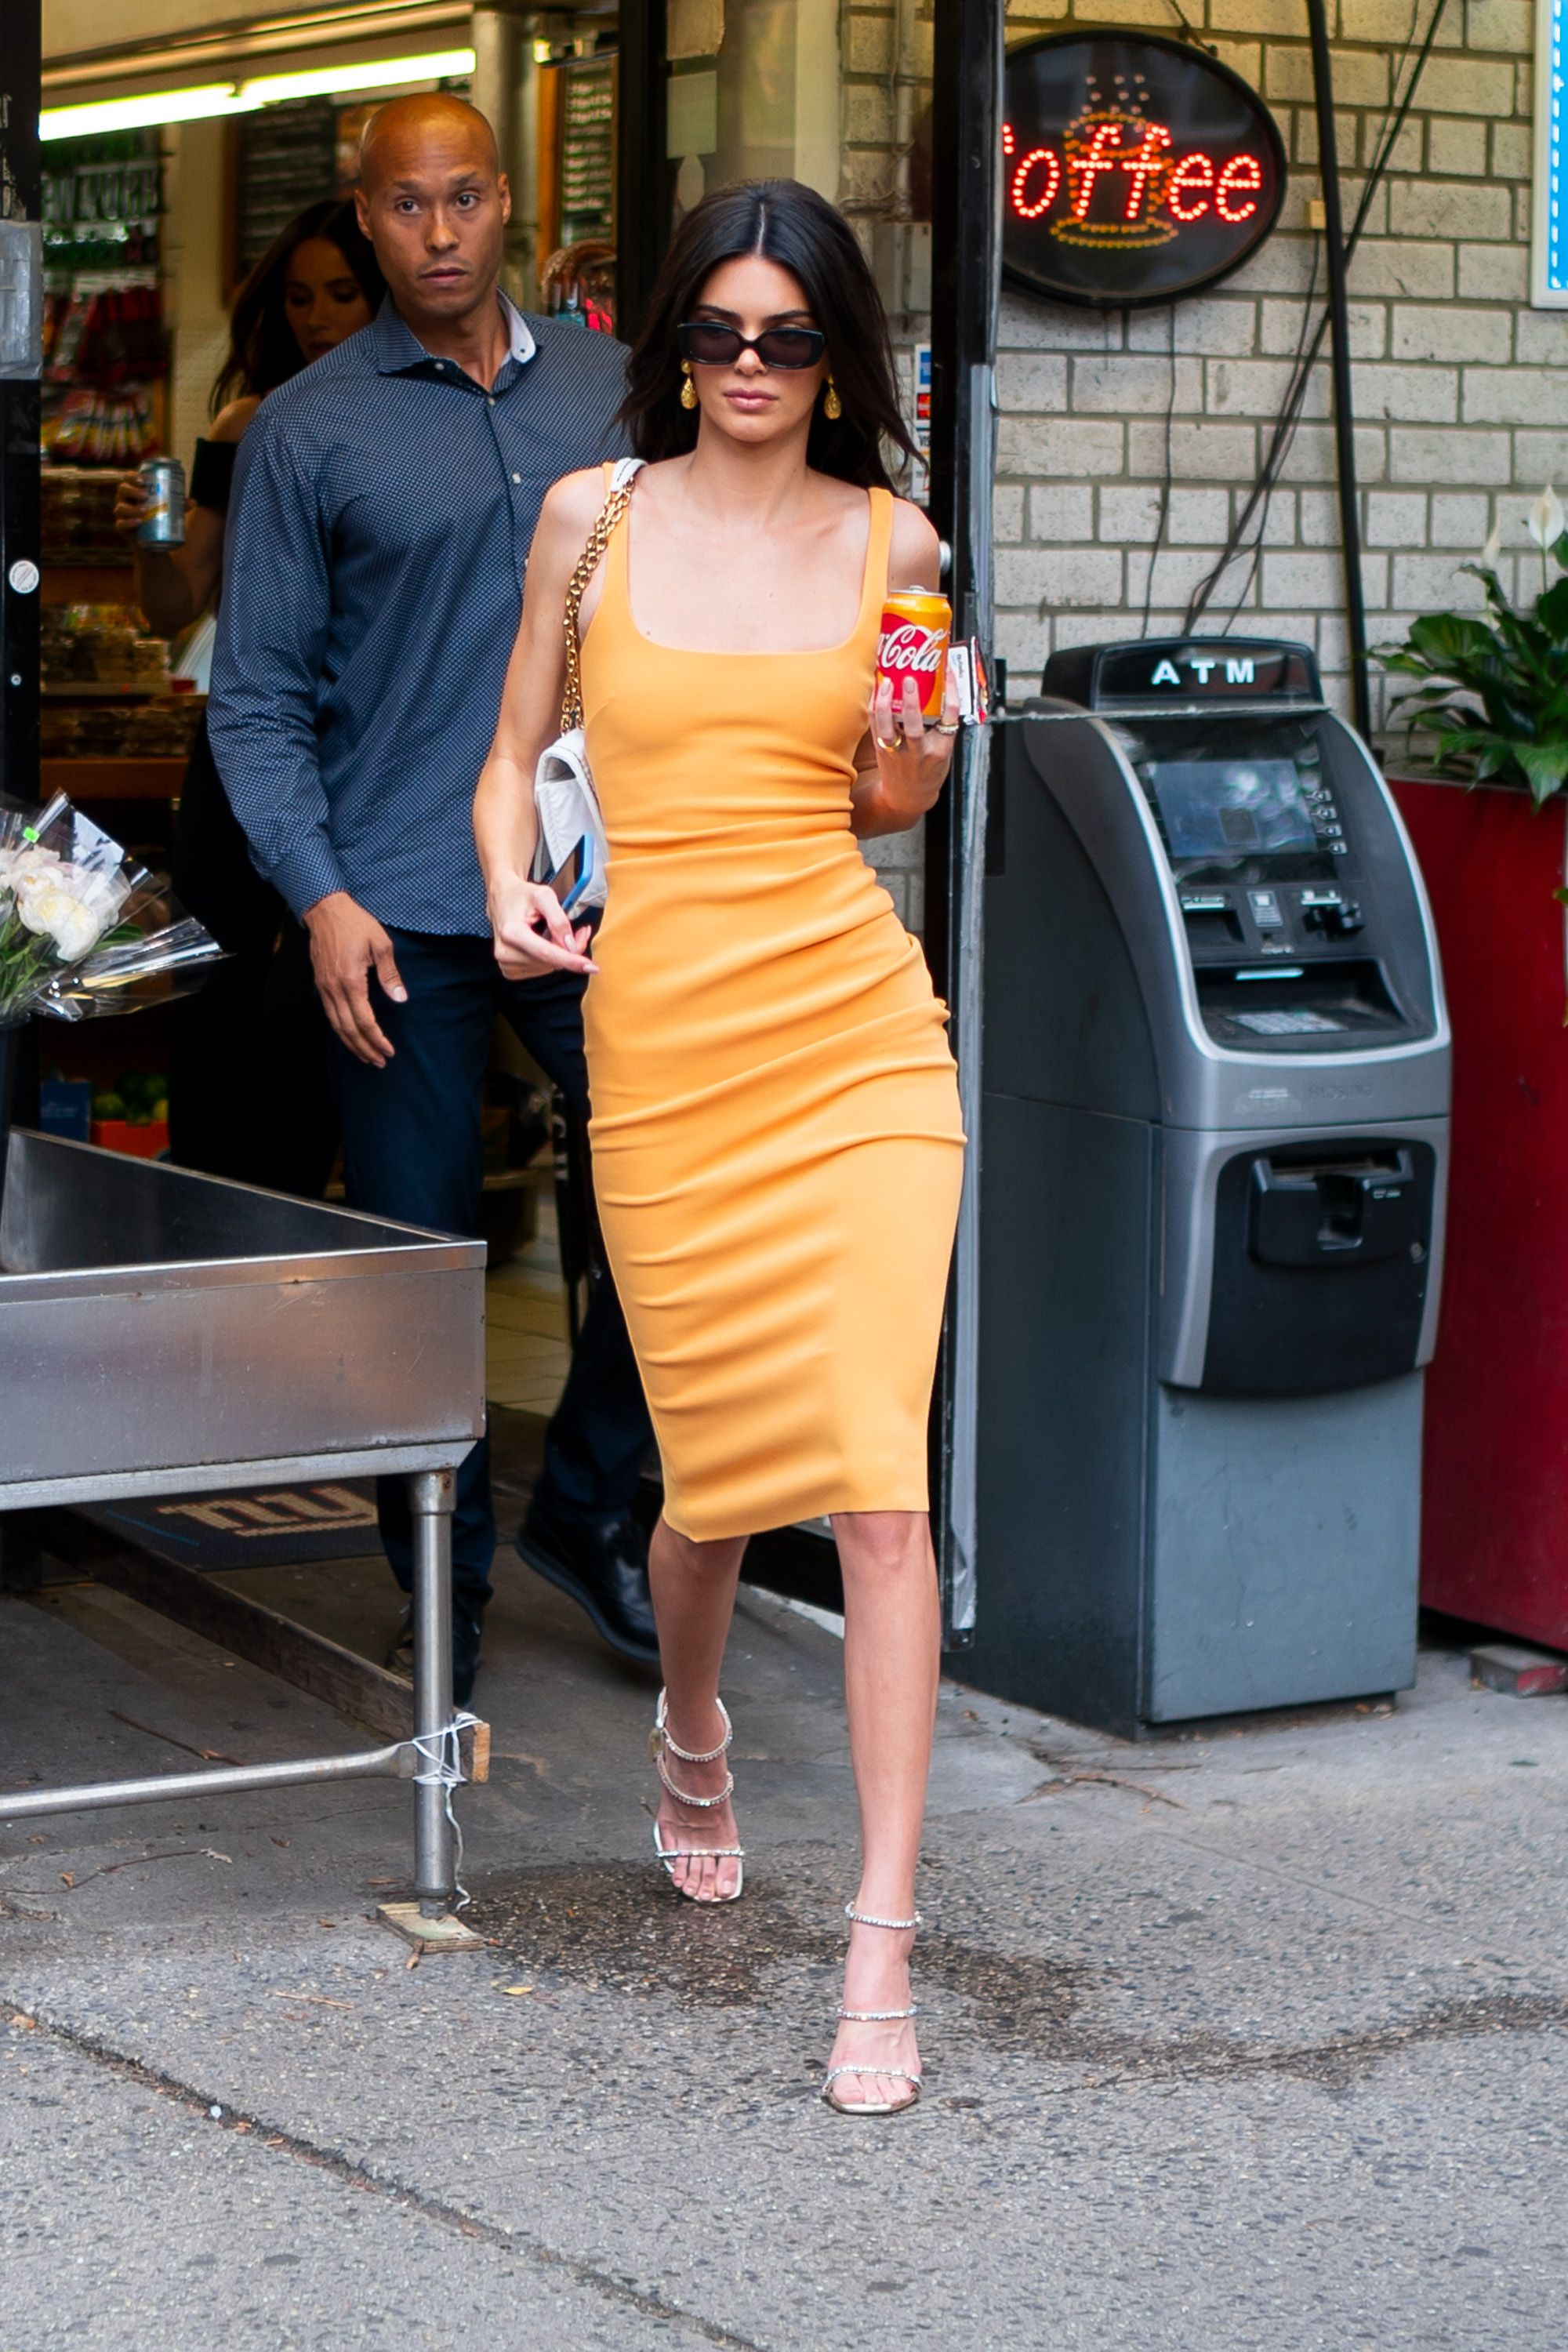 Kendall Jenner's orange dress conspiracy theory, explained